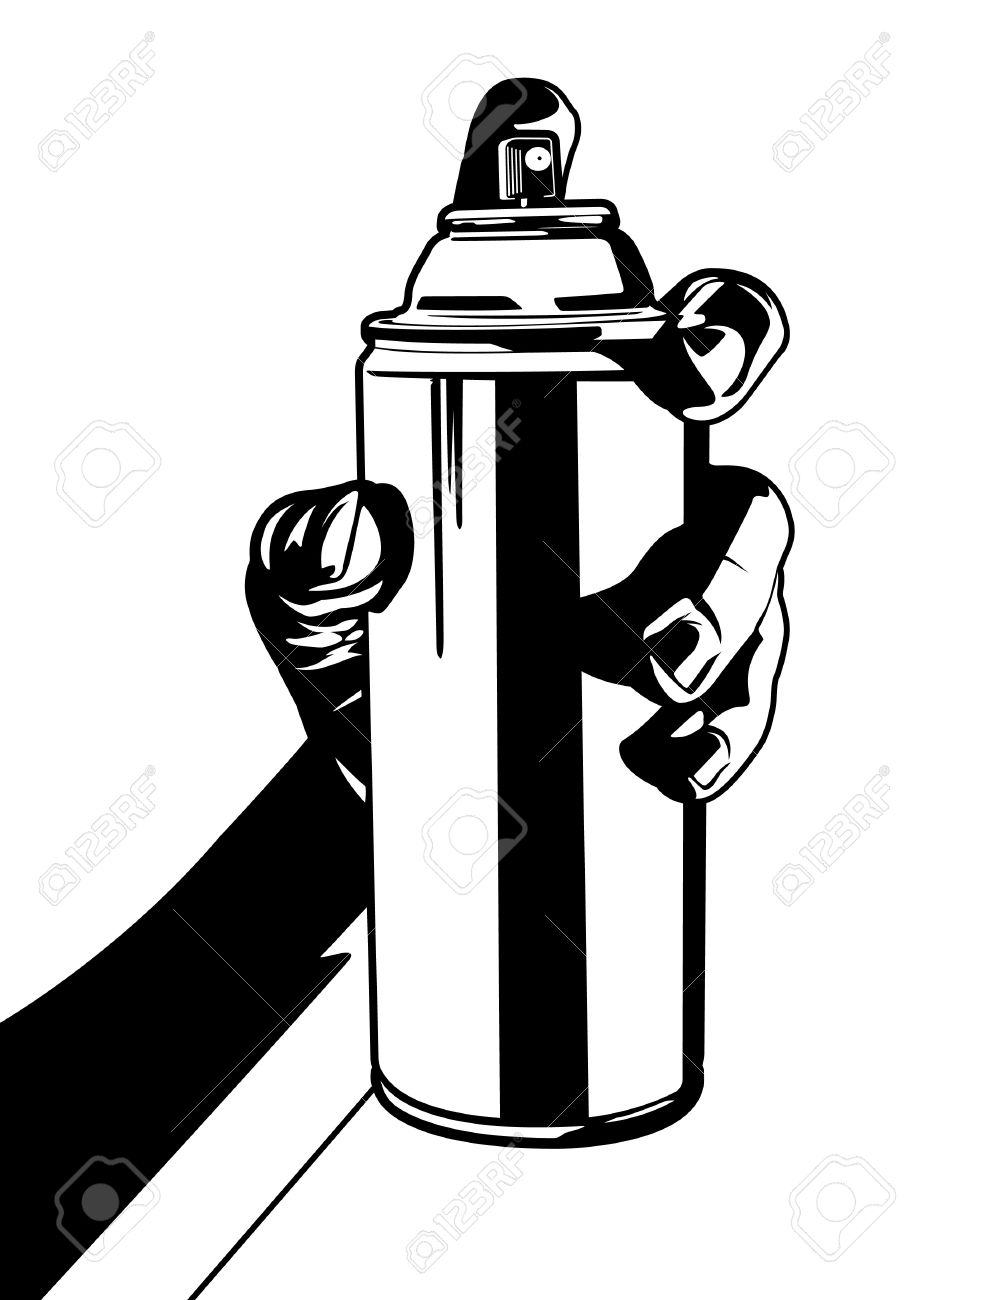 Hand Drawing Spray Cans For Graffiti Vector Illustration